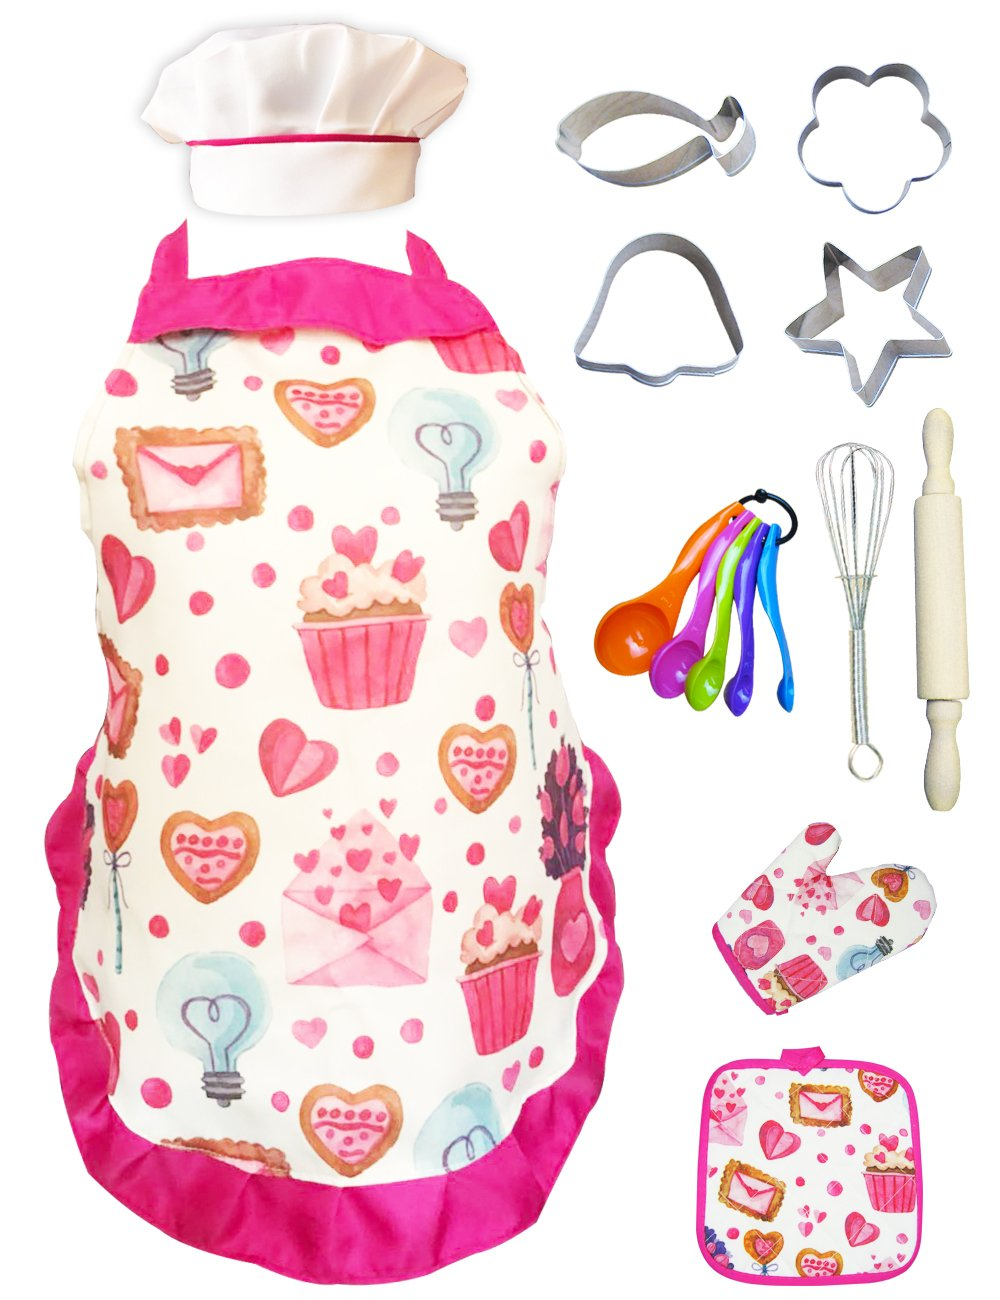 Cupcake Chef Set for Kids Cooking, Play Set with Apron for Girls,Chef Hat, and Other Accessories for Toddler,Career Role Play, Great Gift for Children Pretend Play, Size Medium 5-12 11 Pcs (Chef Set) by NLooking